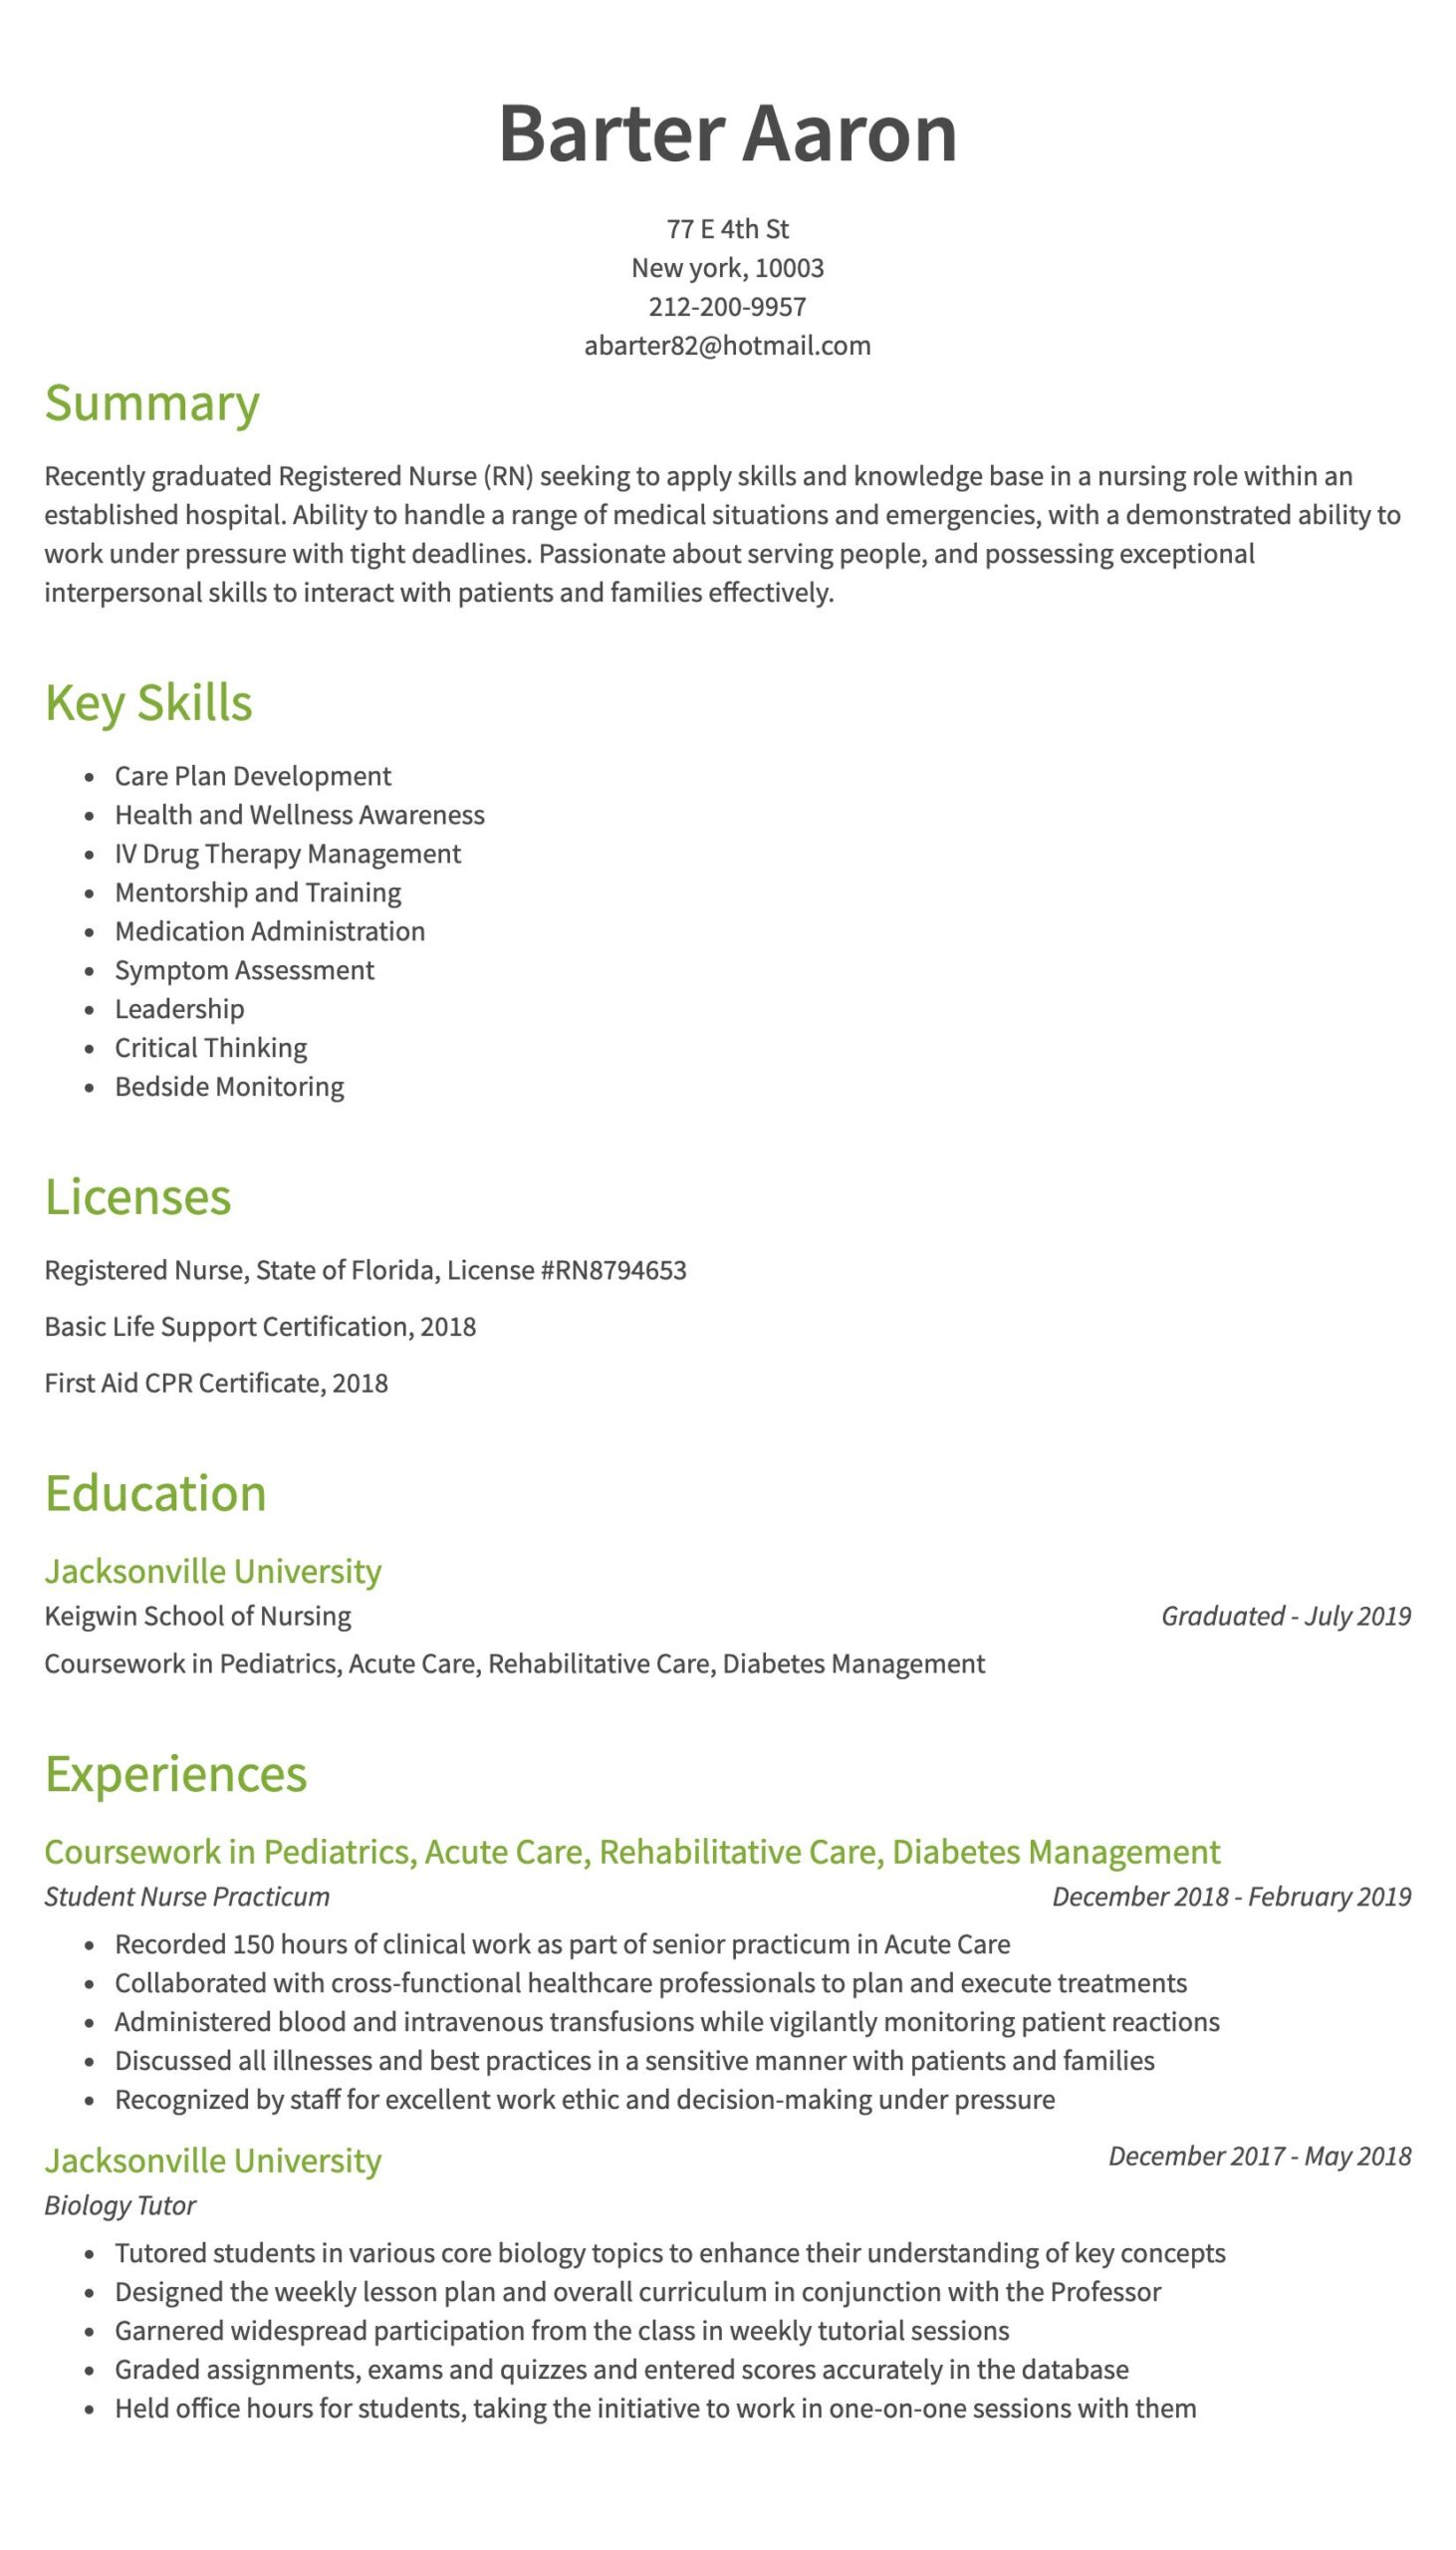 nursing resume examples samples written by rn managers entry level skills years of exp Resume Entry Level Nursing Resume Skills